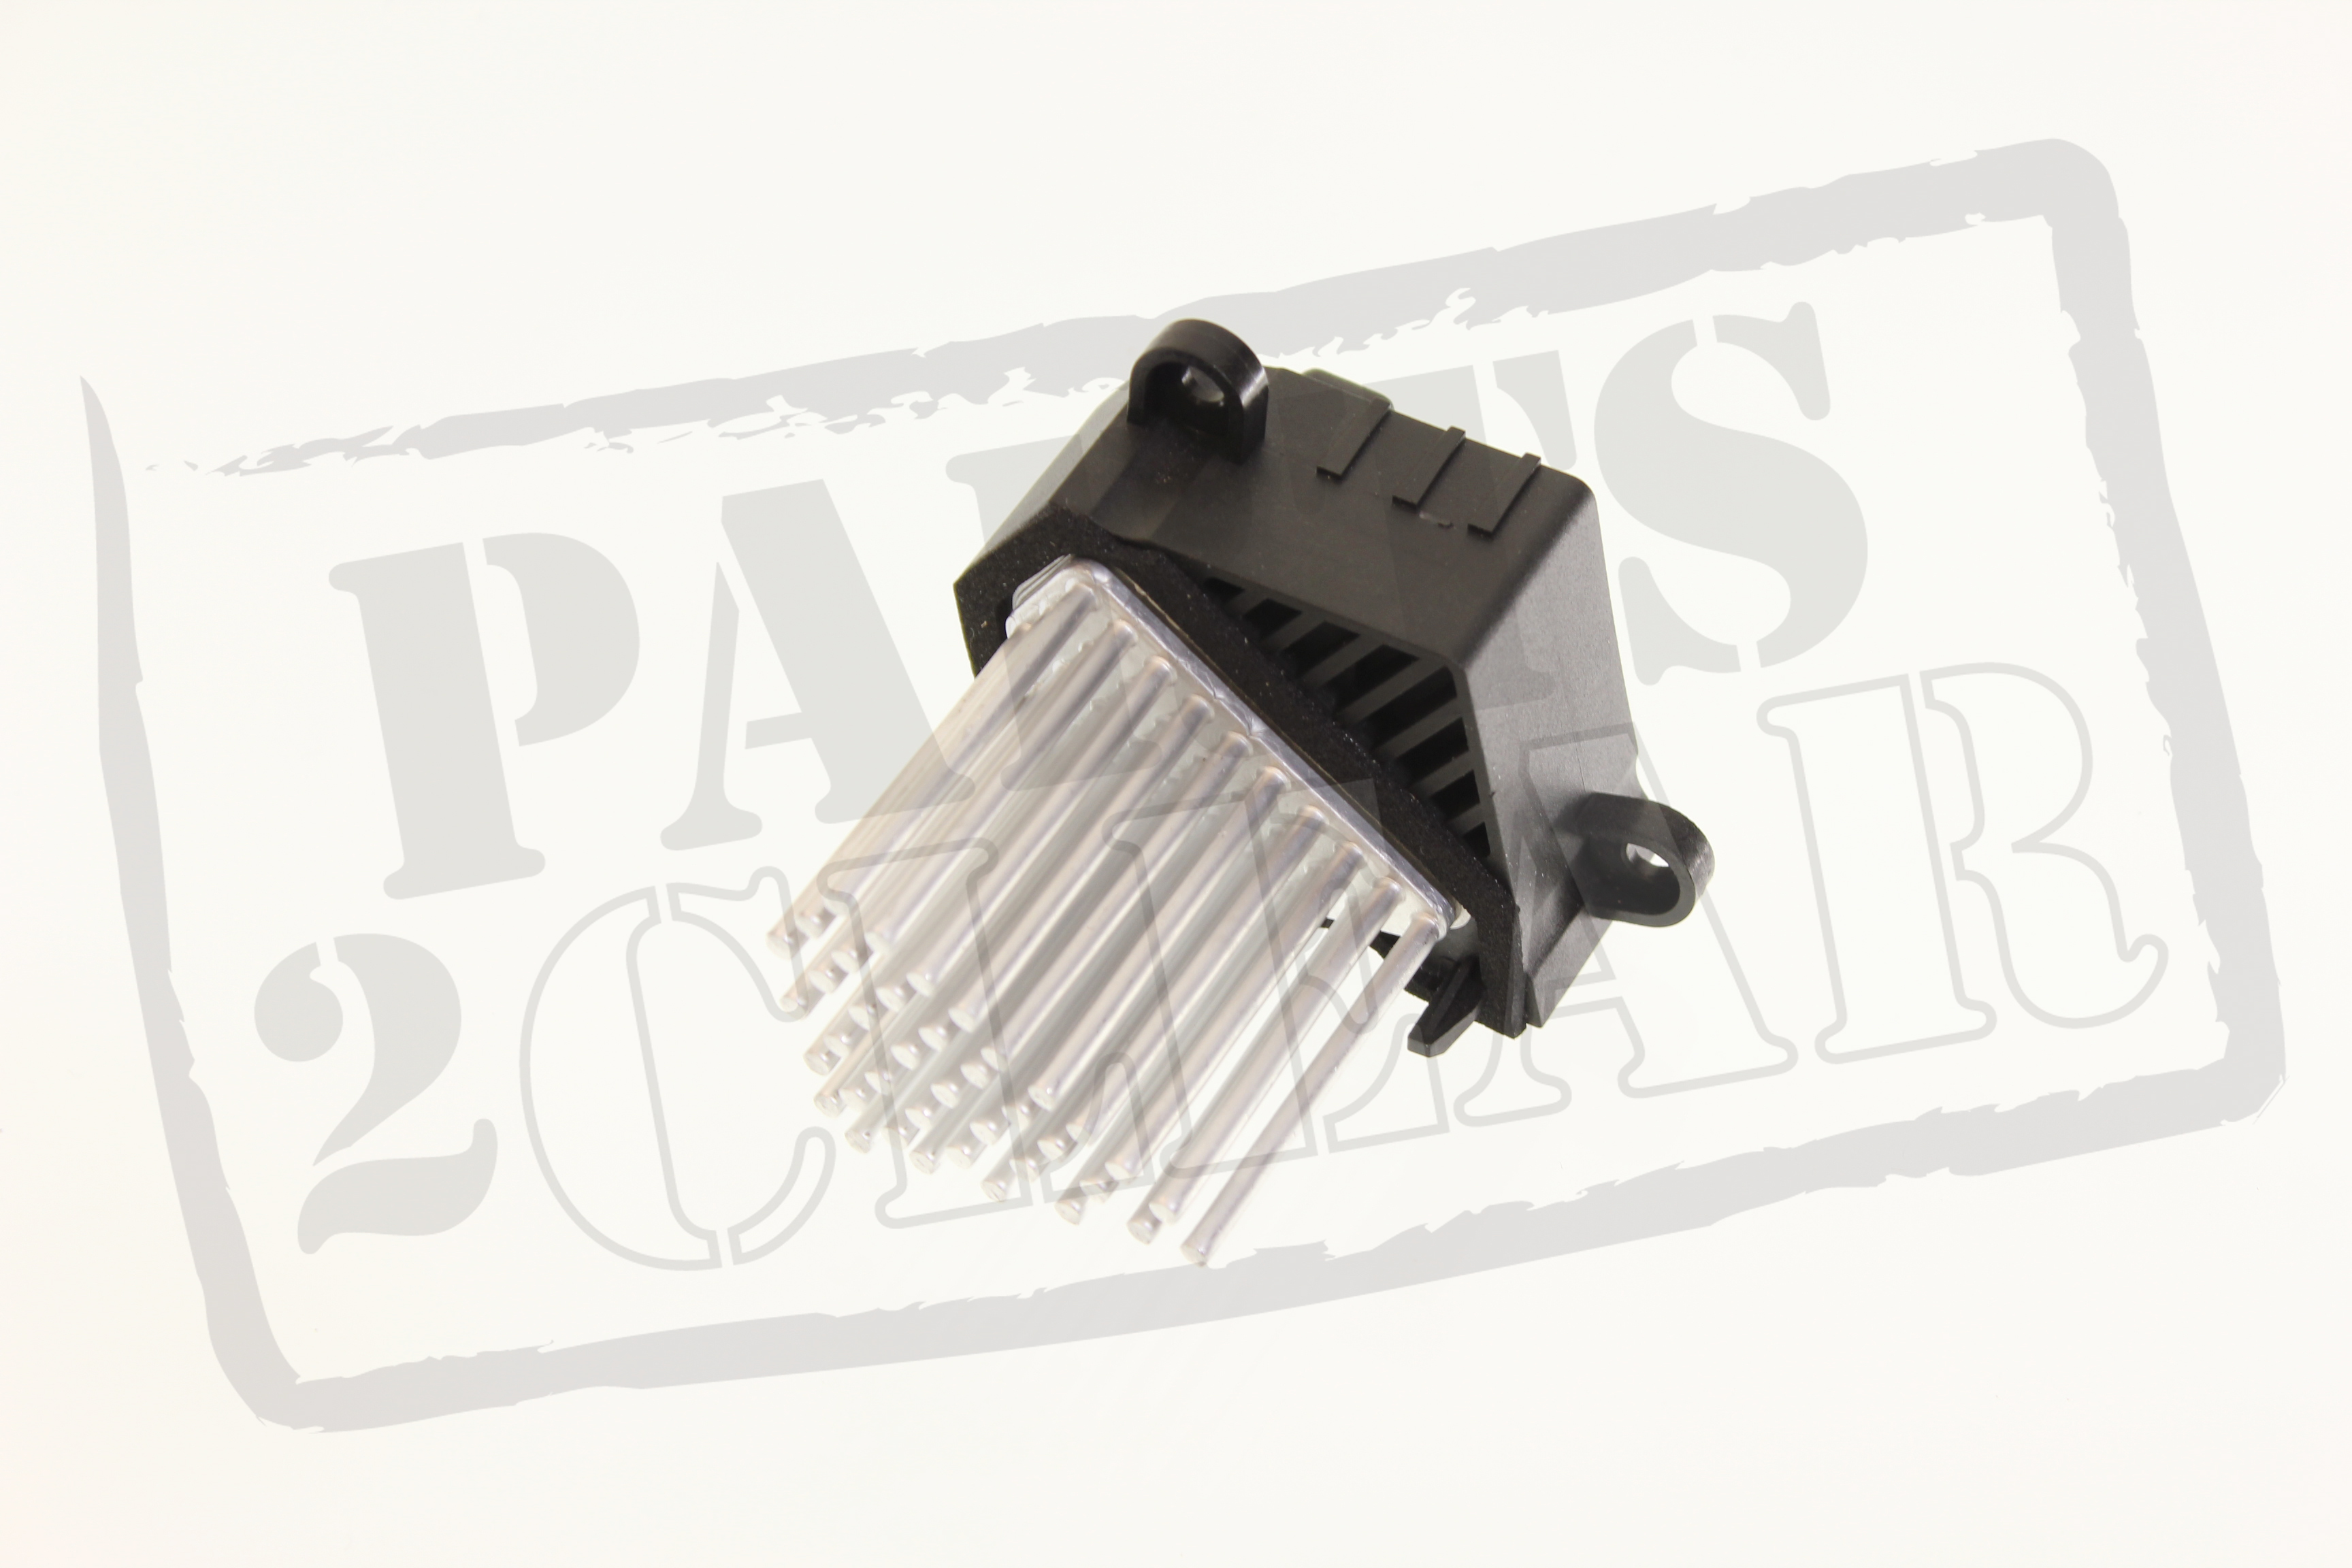 BMW E46 HEATER BLOWER RESISTOR HEDGEHOG 64116920365